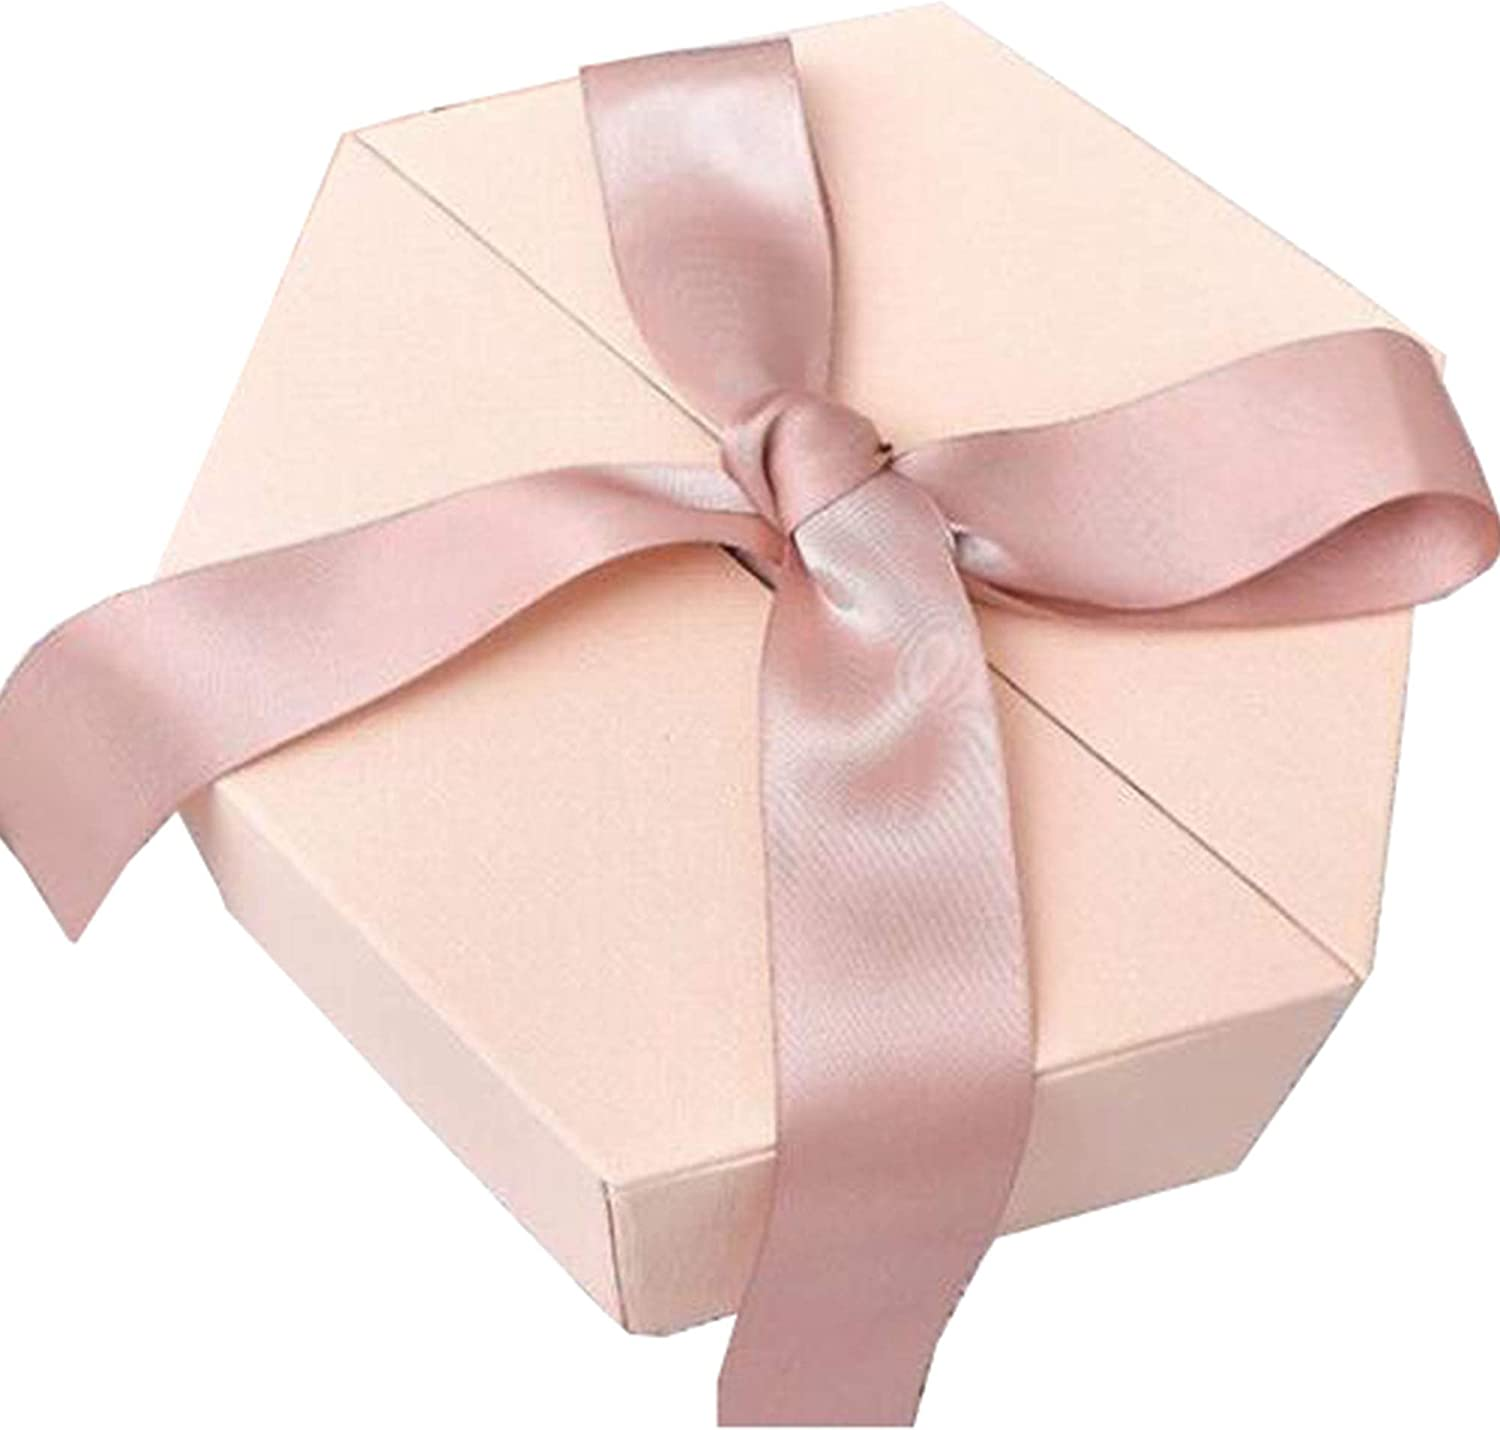 LXYDD Jewellery Gift Boxes for Gi Surprise Clearance SALE Limited time Max 40% OFF Presents Box Bow-Knot